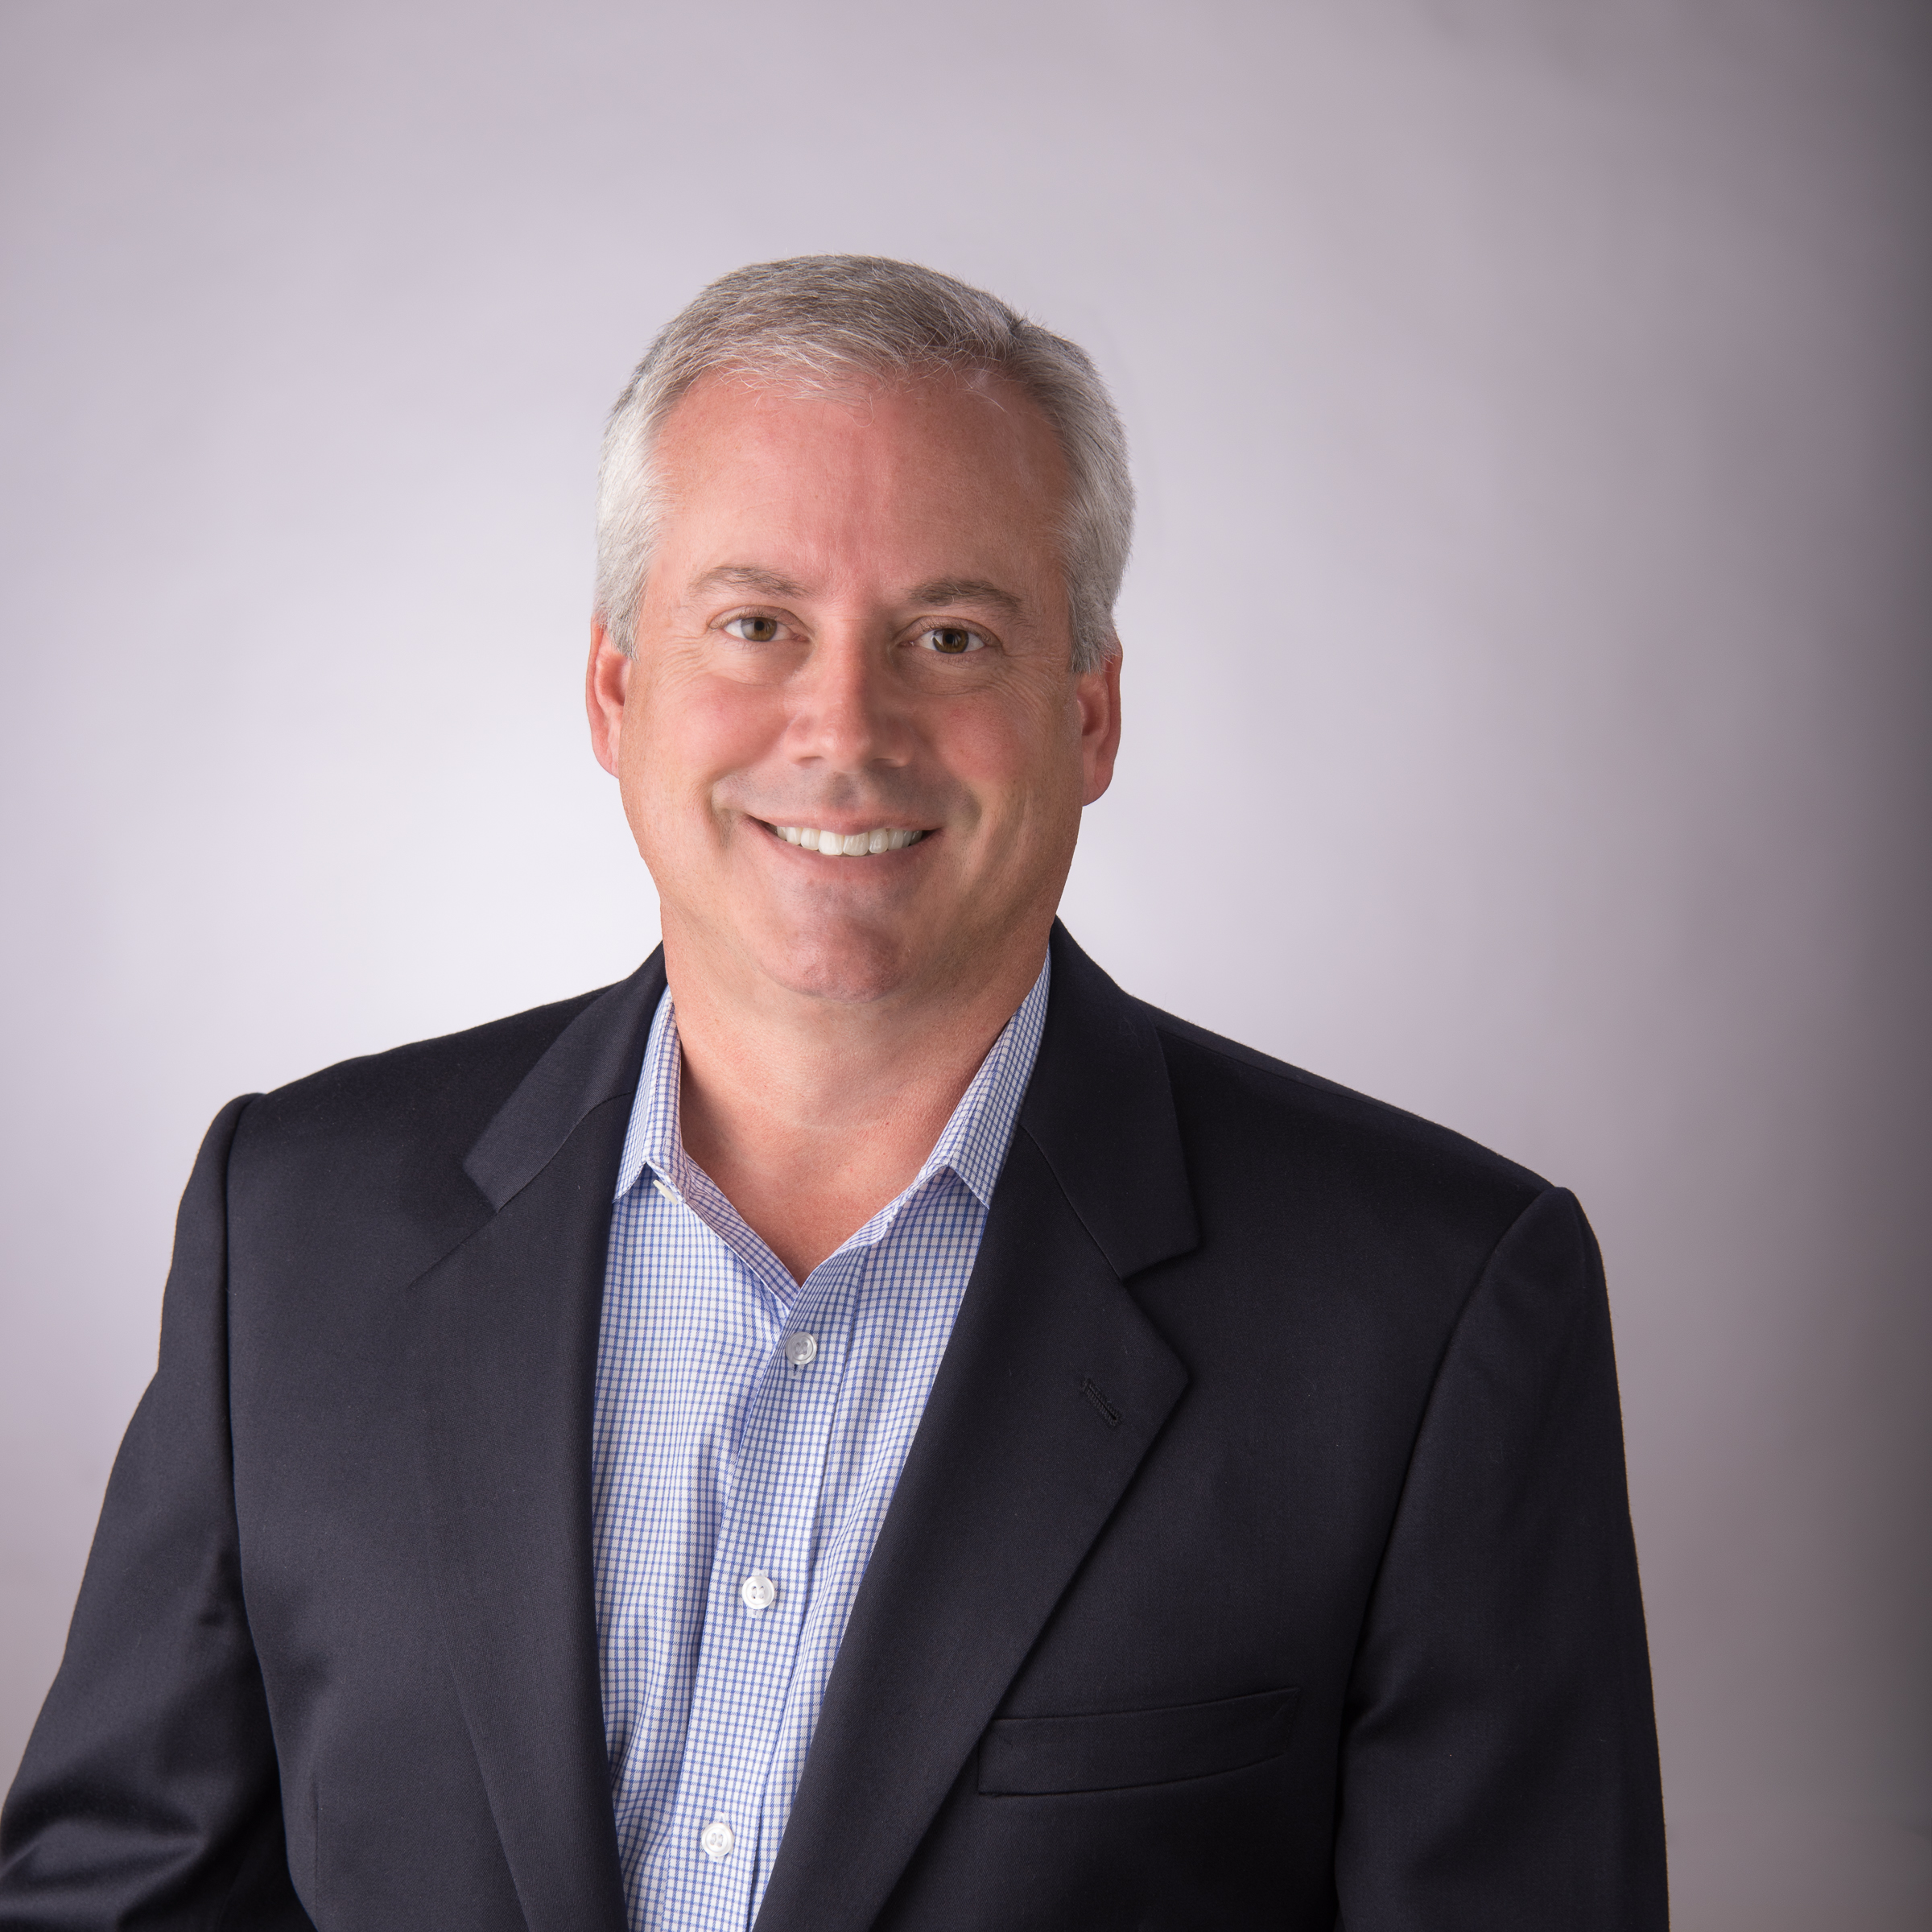 Vistage Executive Chair Tim Scronce Announces the Forming of a New